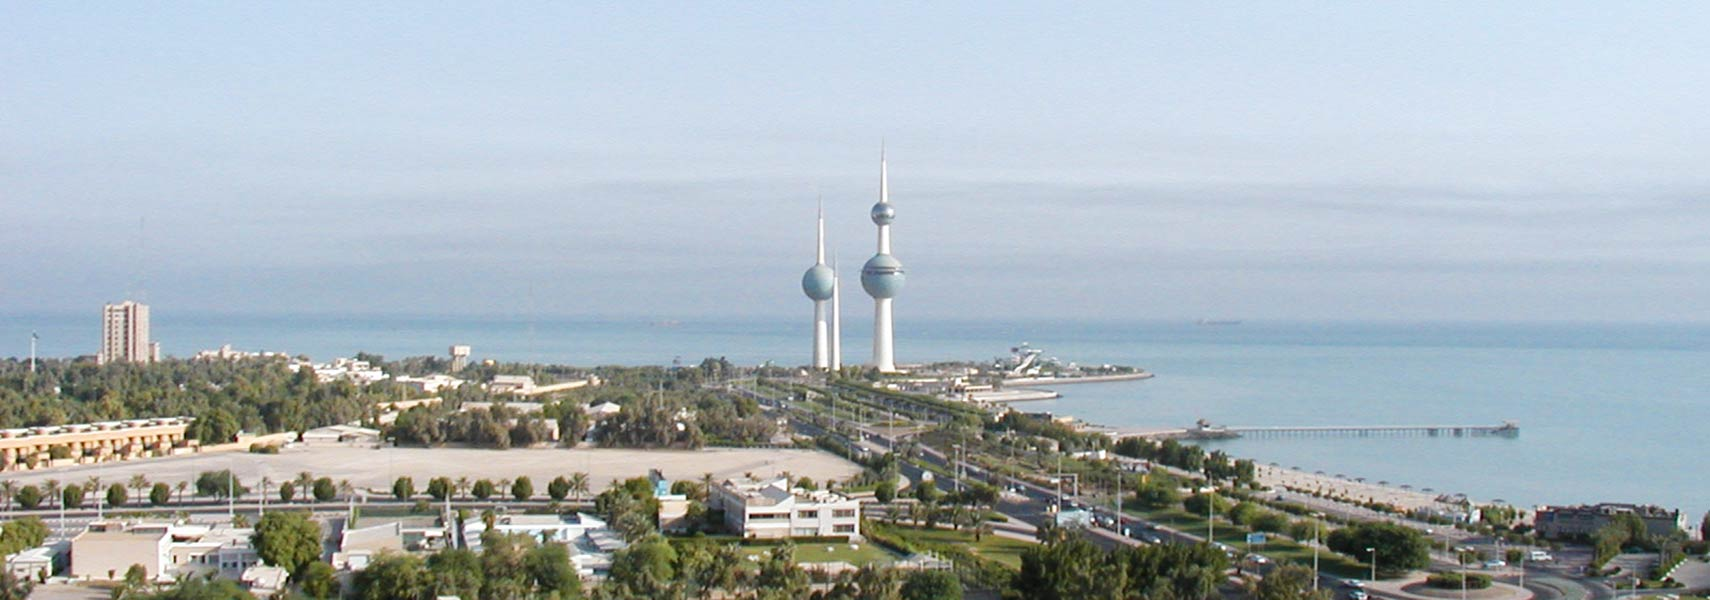 Kuwait State Of Kuwait Country Profile Nations Online Project - Us embassy kuwait zip code